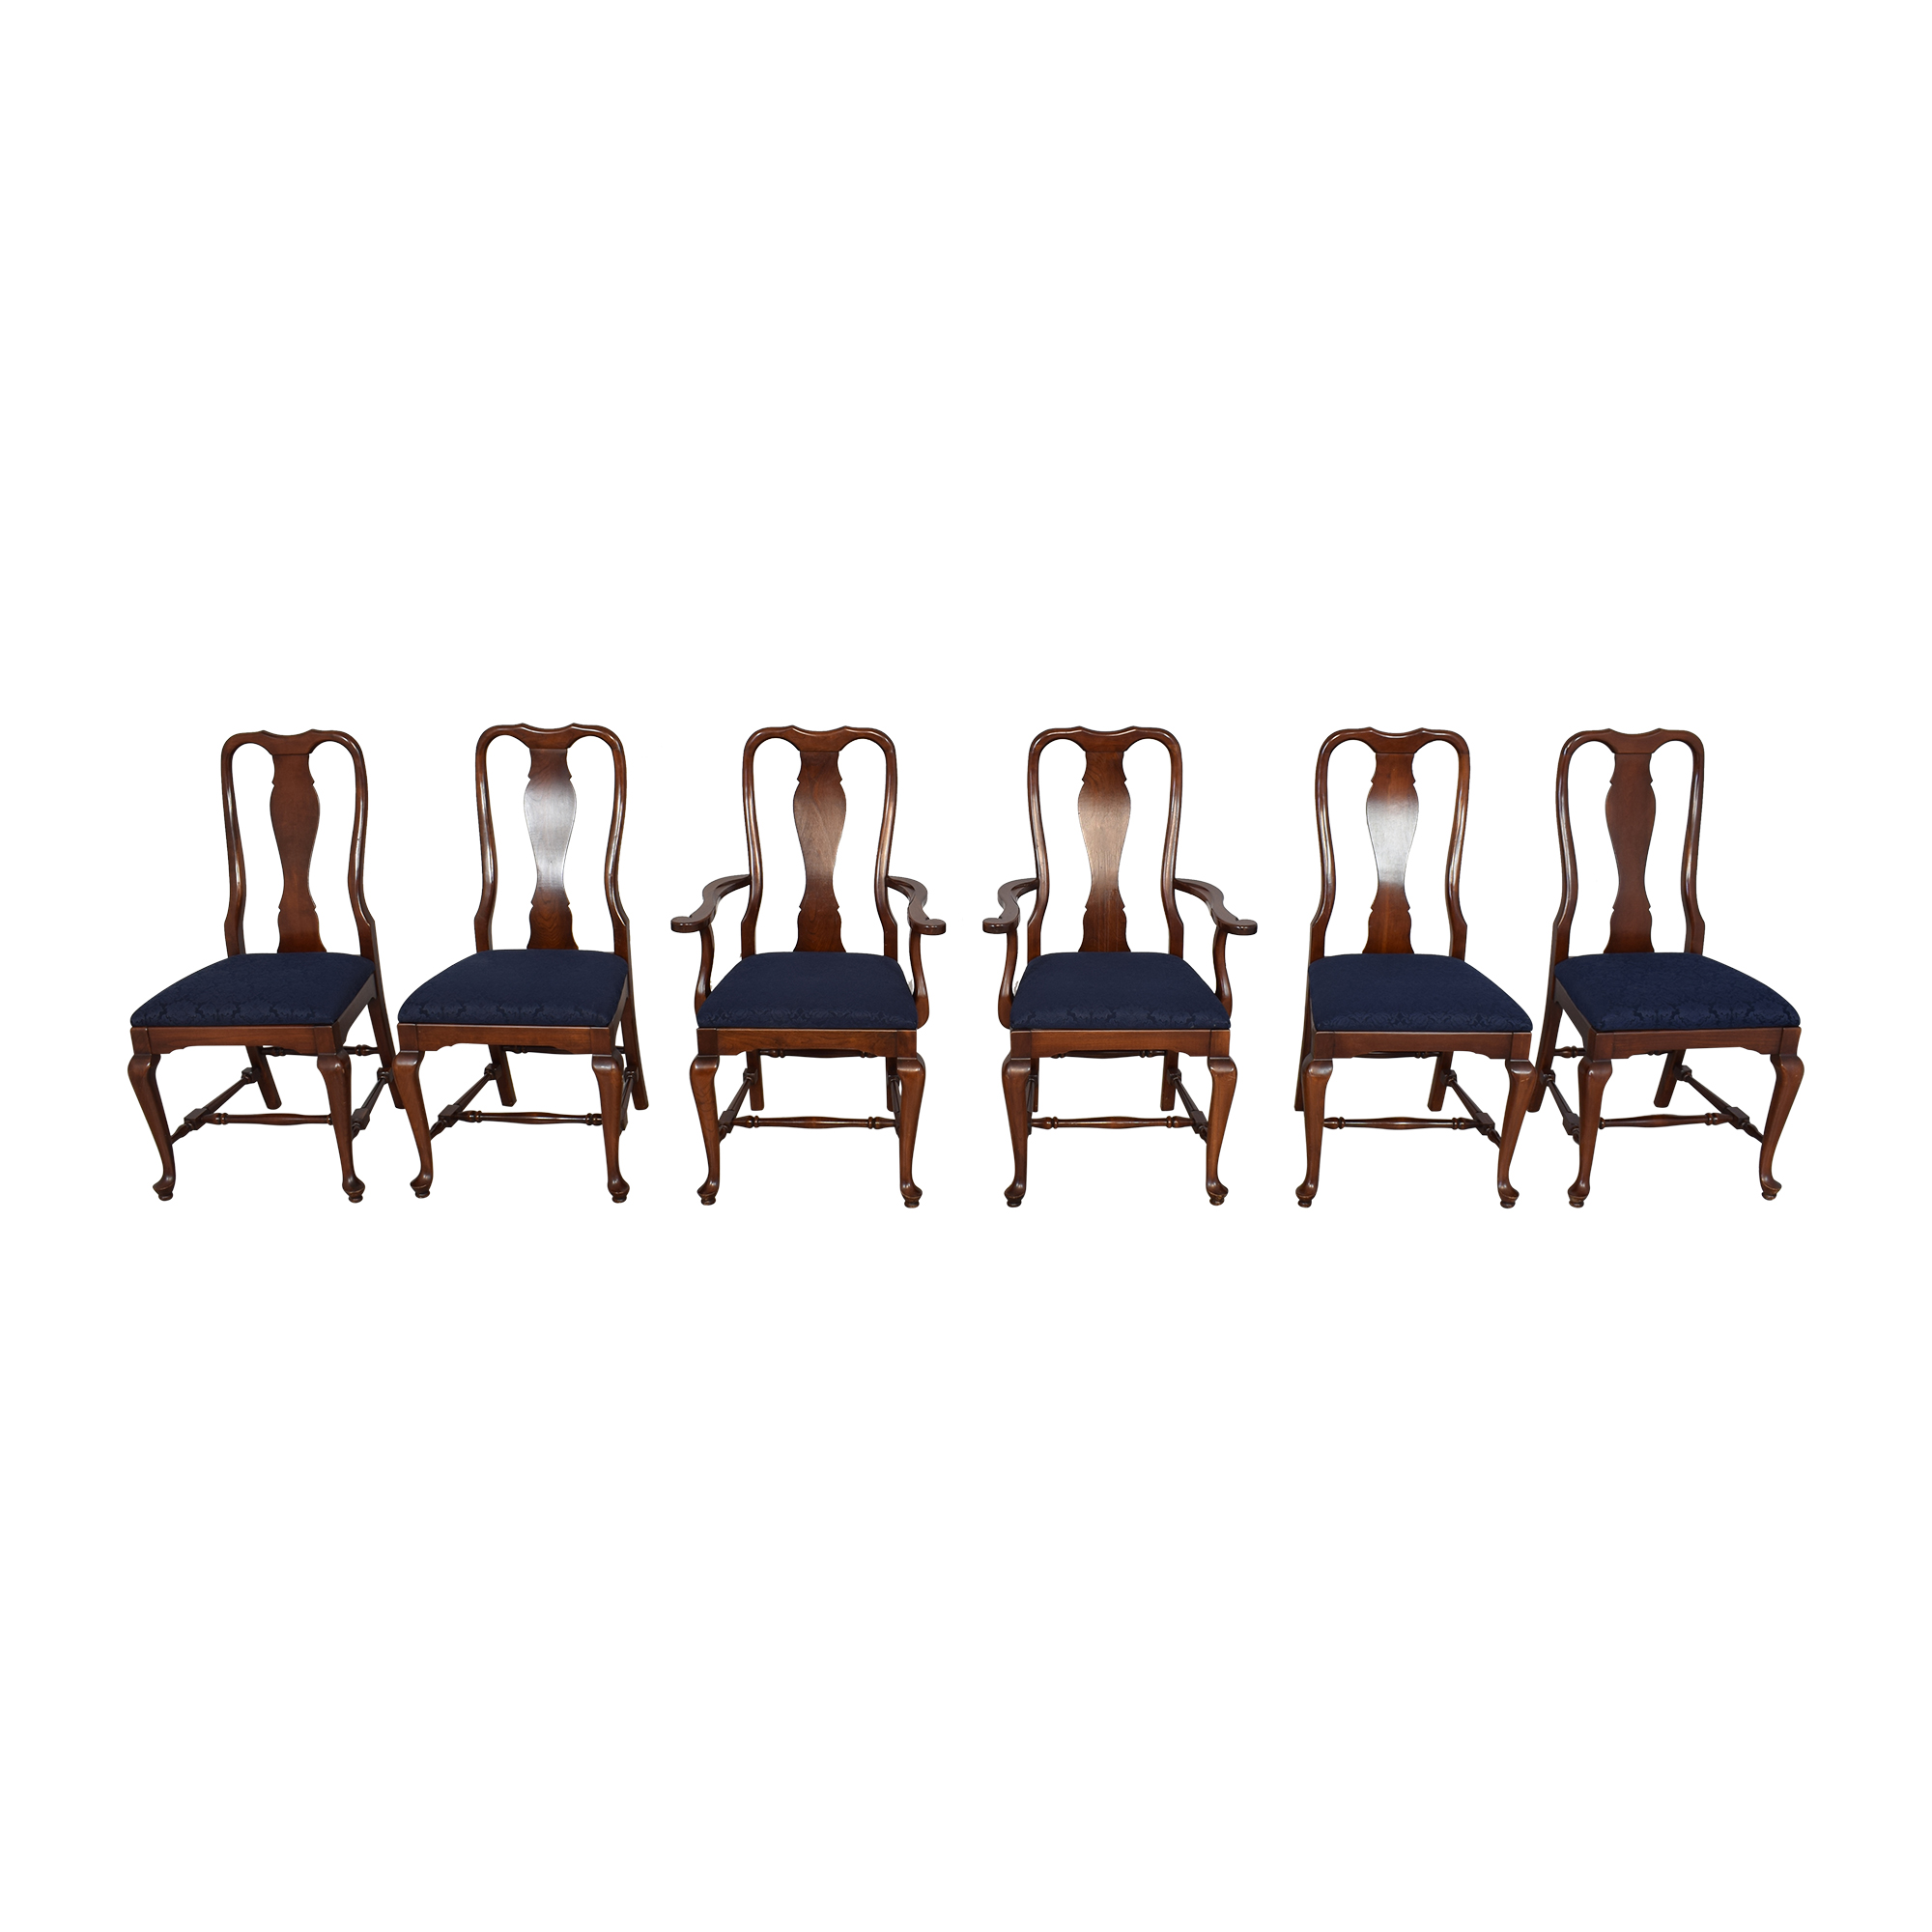 Hitchcock Hitchcock Queen Anne Dining Chairs for sale